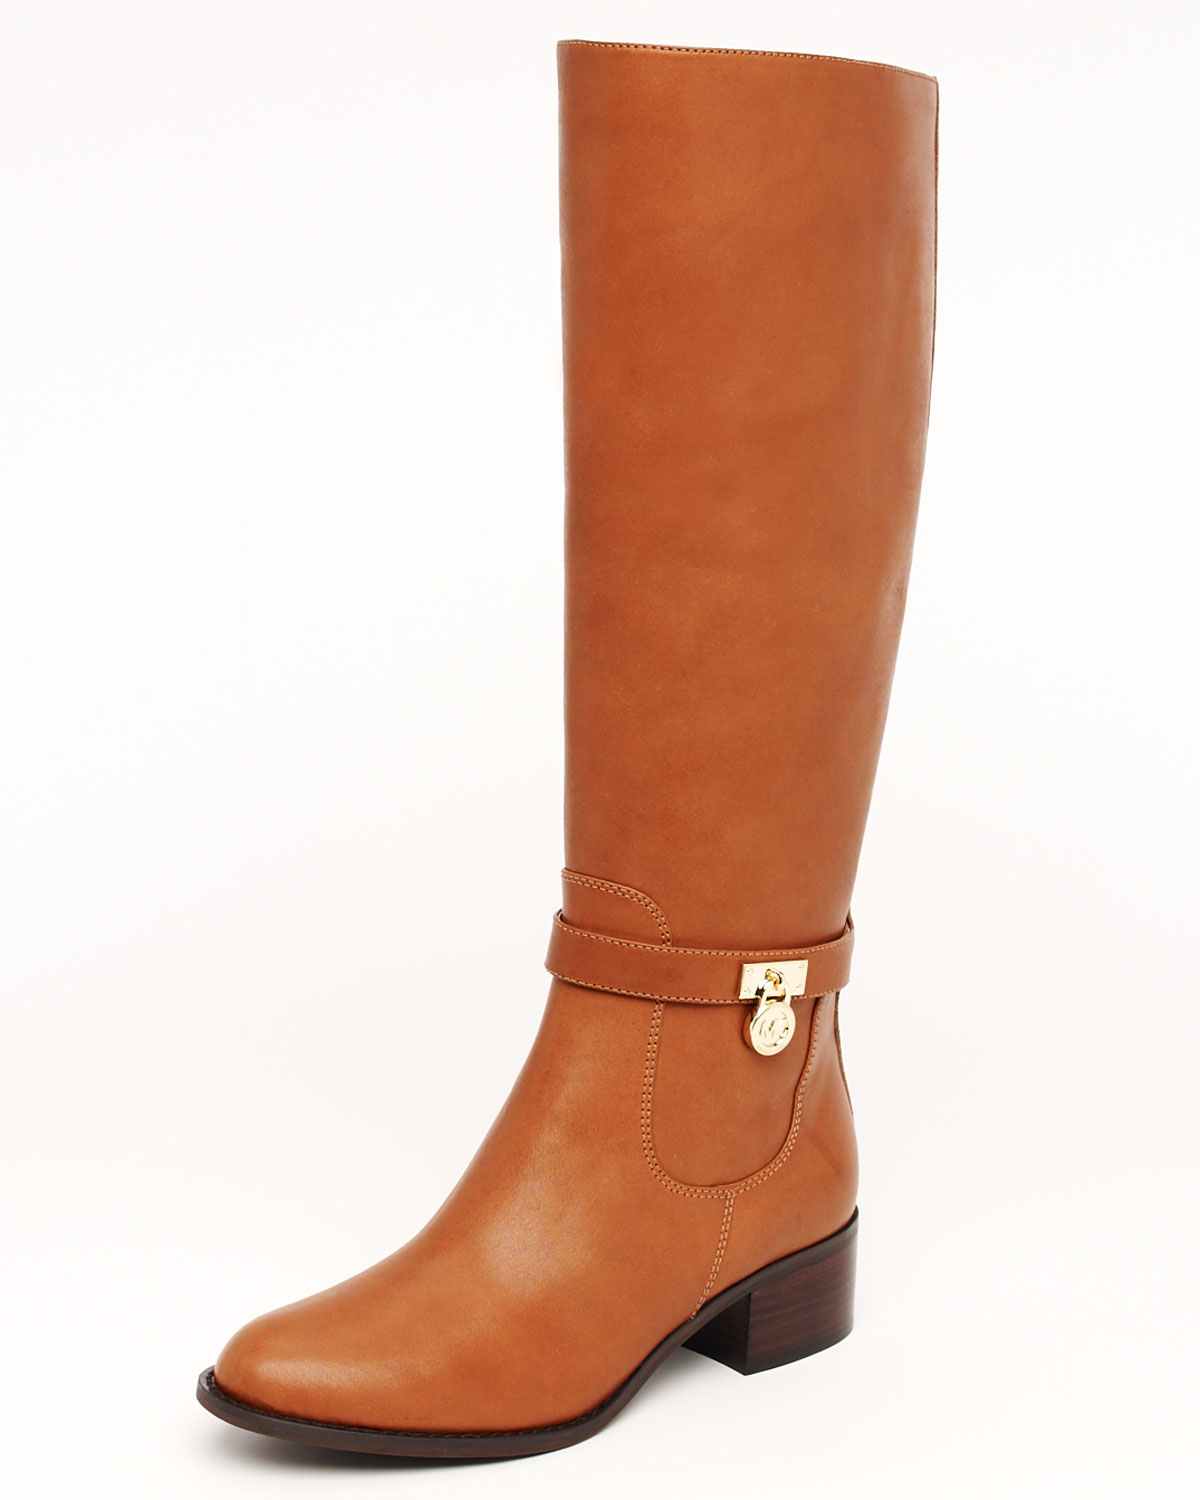 Lyst - Michael Michael Kors Hamilton Riding Boot In Brown